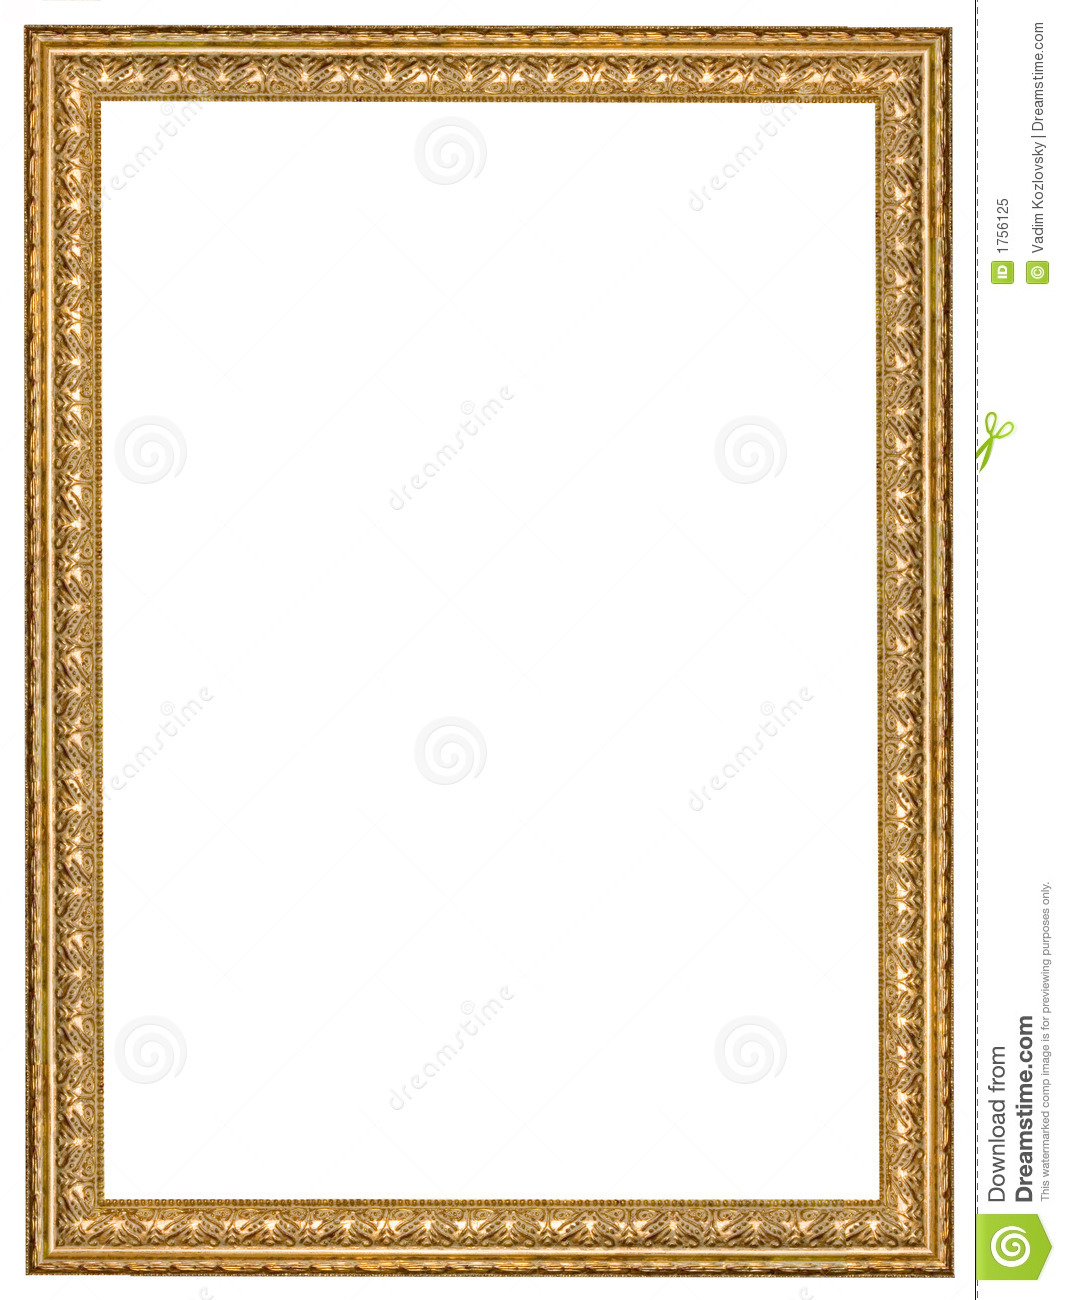 Antique wooden frame stock image. Image of painting, frame - 1756125